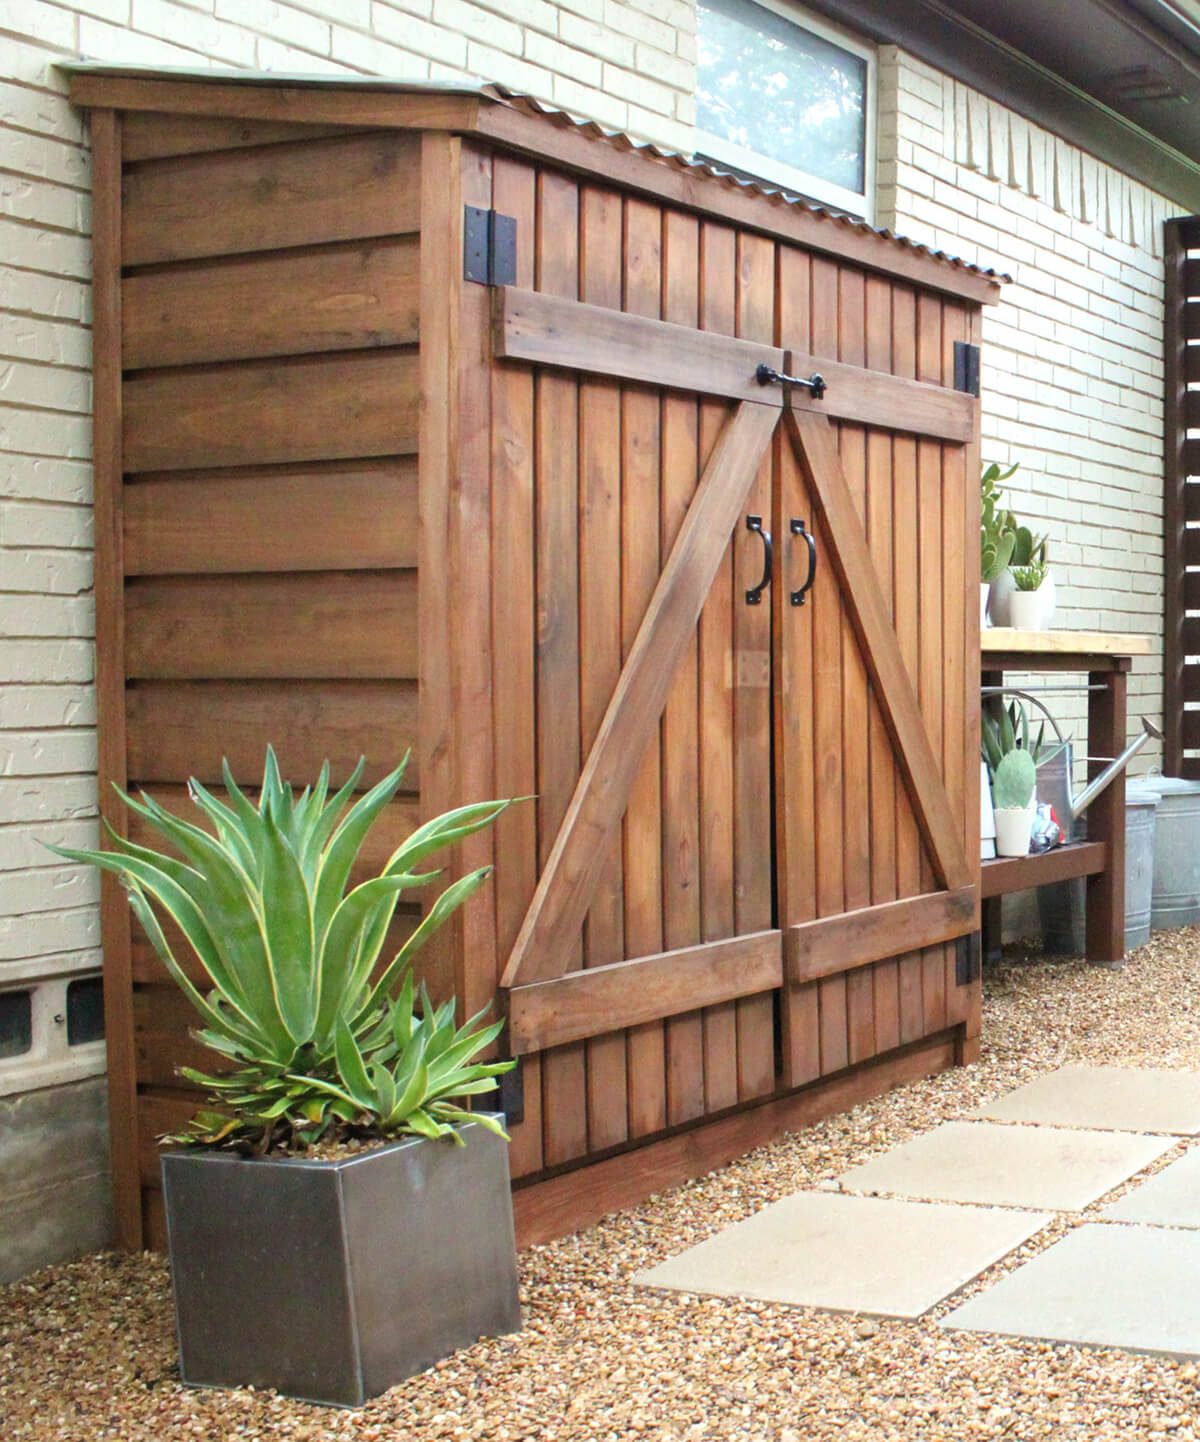 17.SIMPHOME.COM best small storage shed projects ideas and designs for 2019